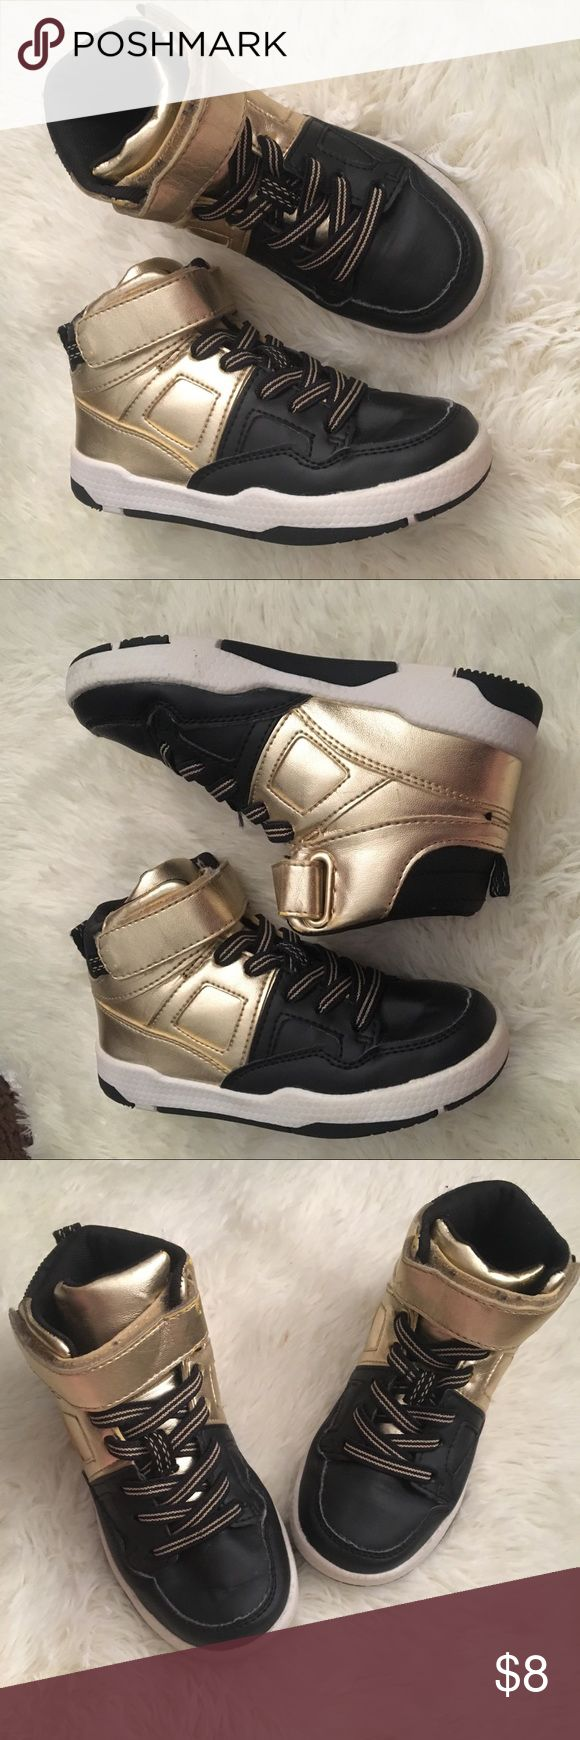 Black and gold high top sneakers Lightly worn H&M Shoes Sneakers